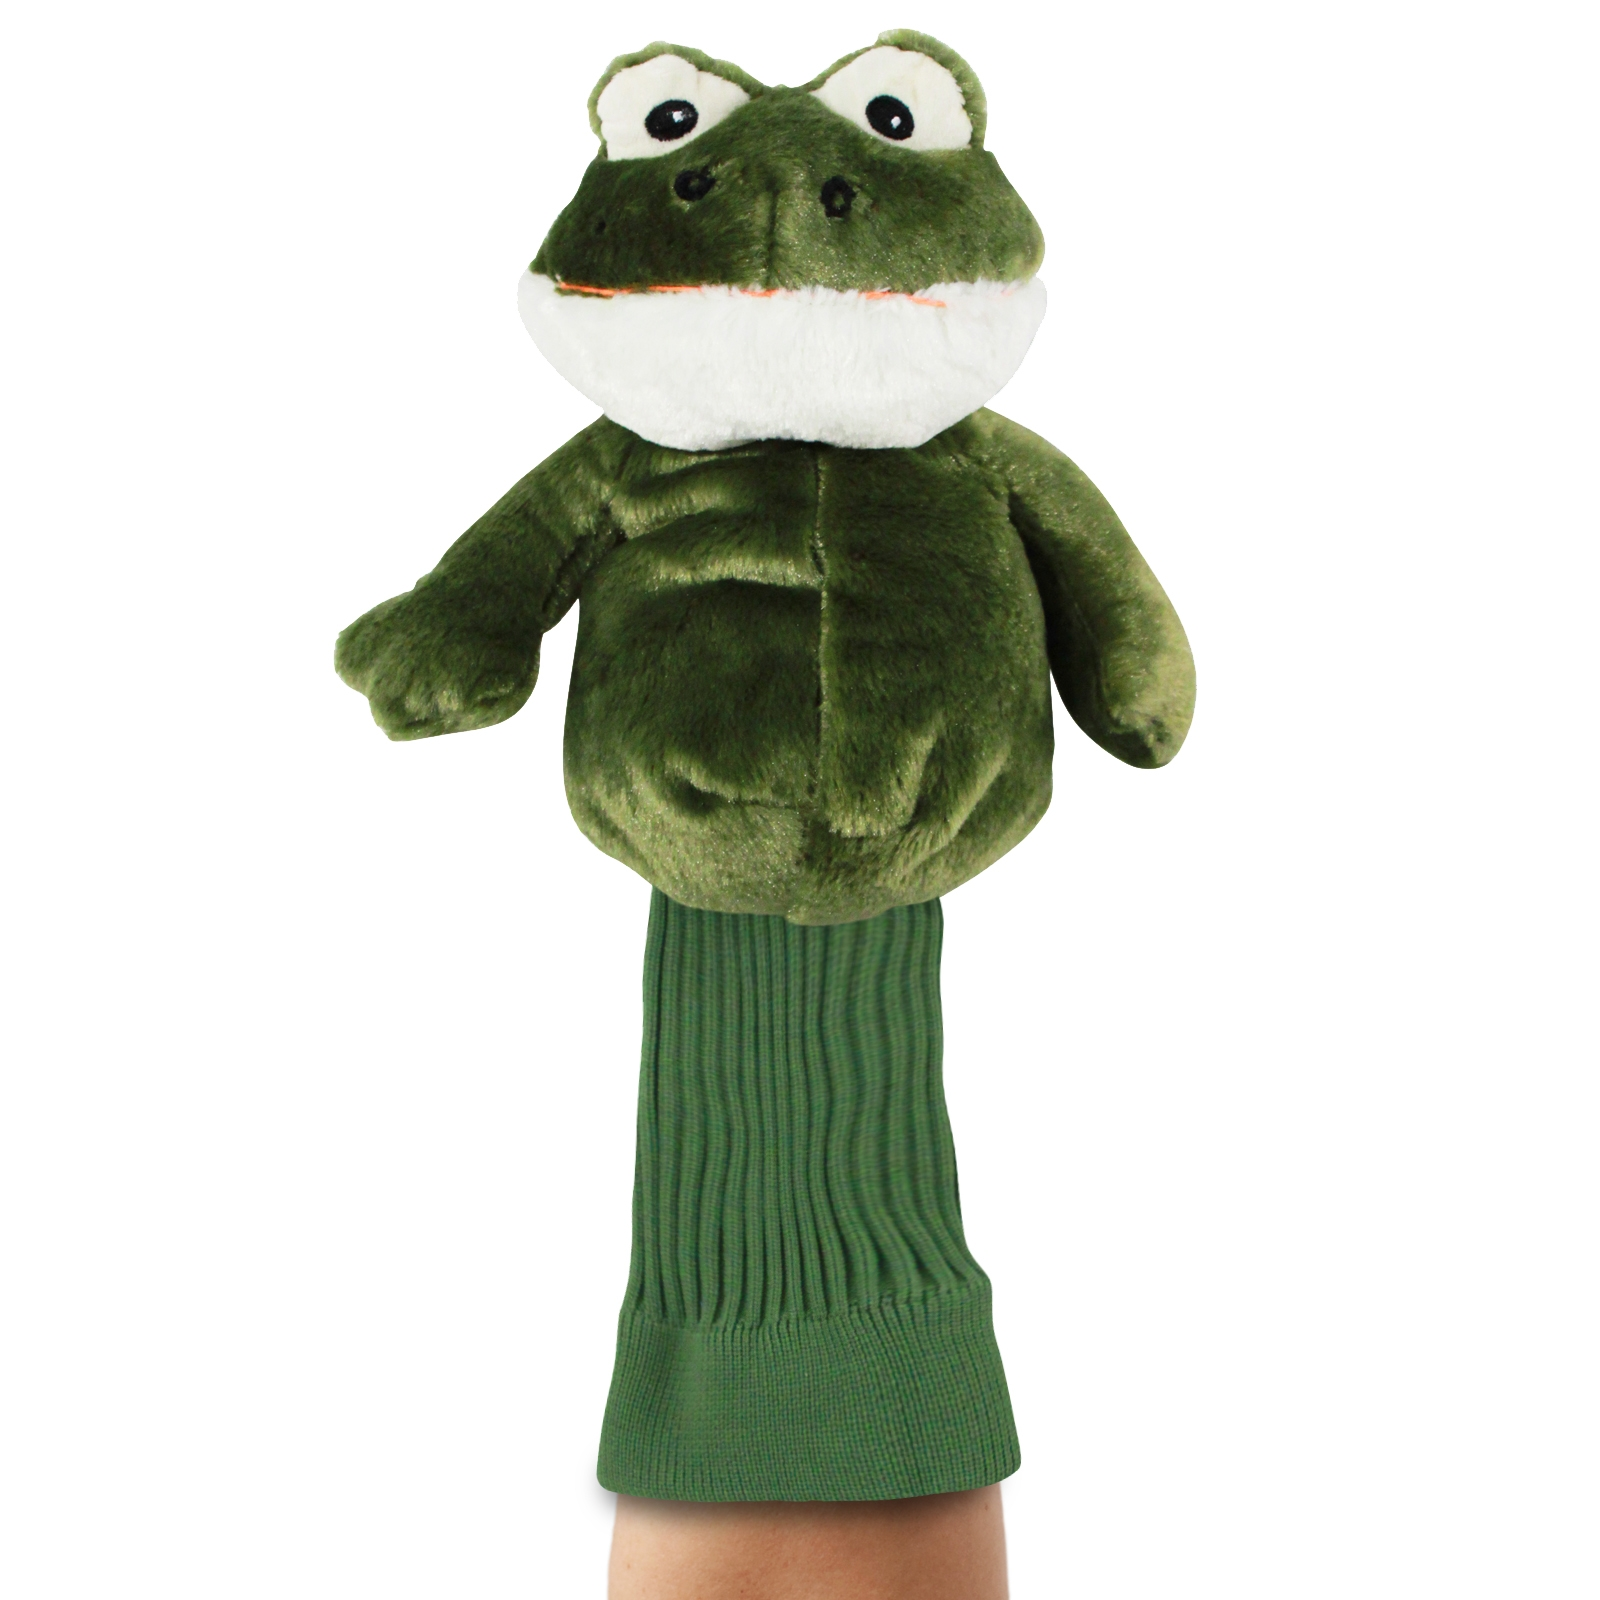 Fairway the Frog Green Plush Kids Hand Puppet